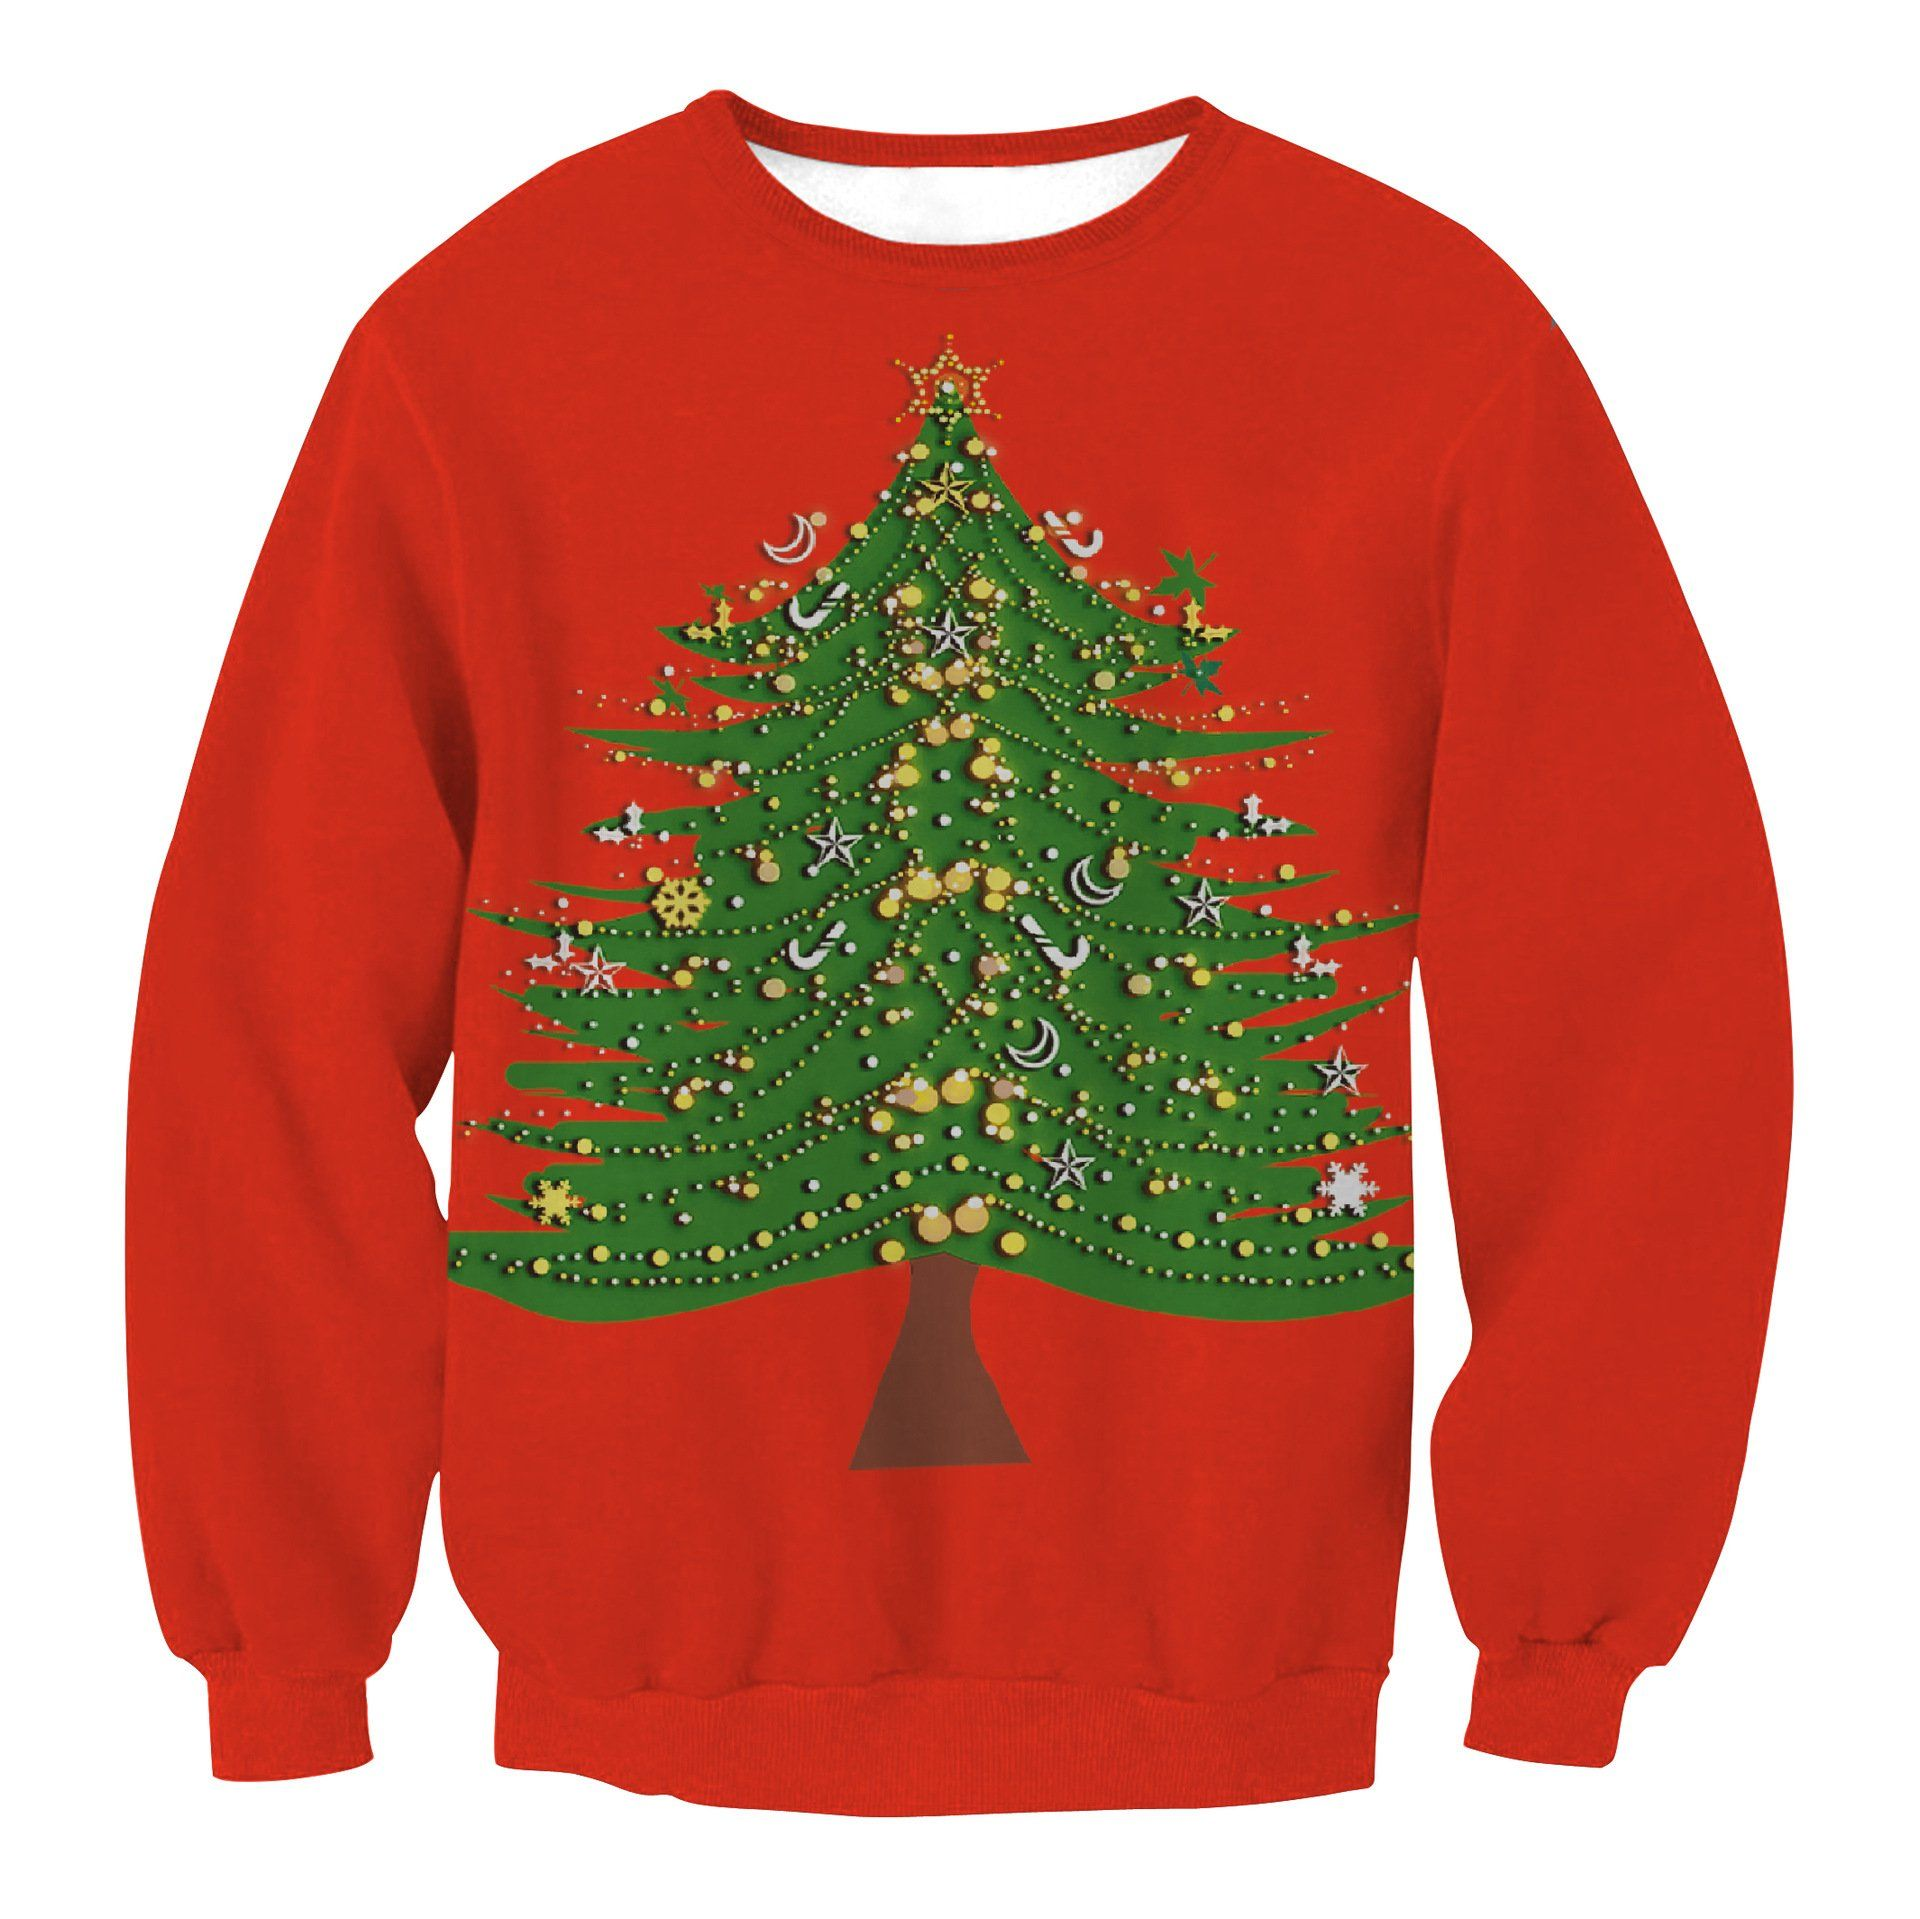 Christmas Awesome sweater design pictures exclusive photo